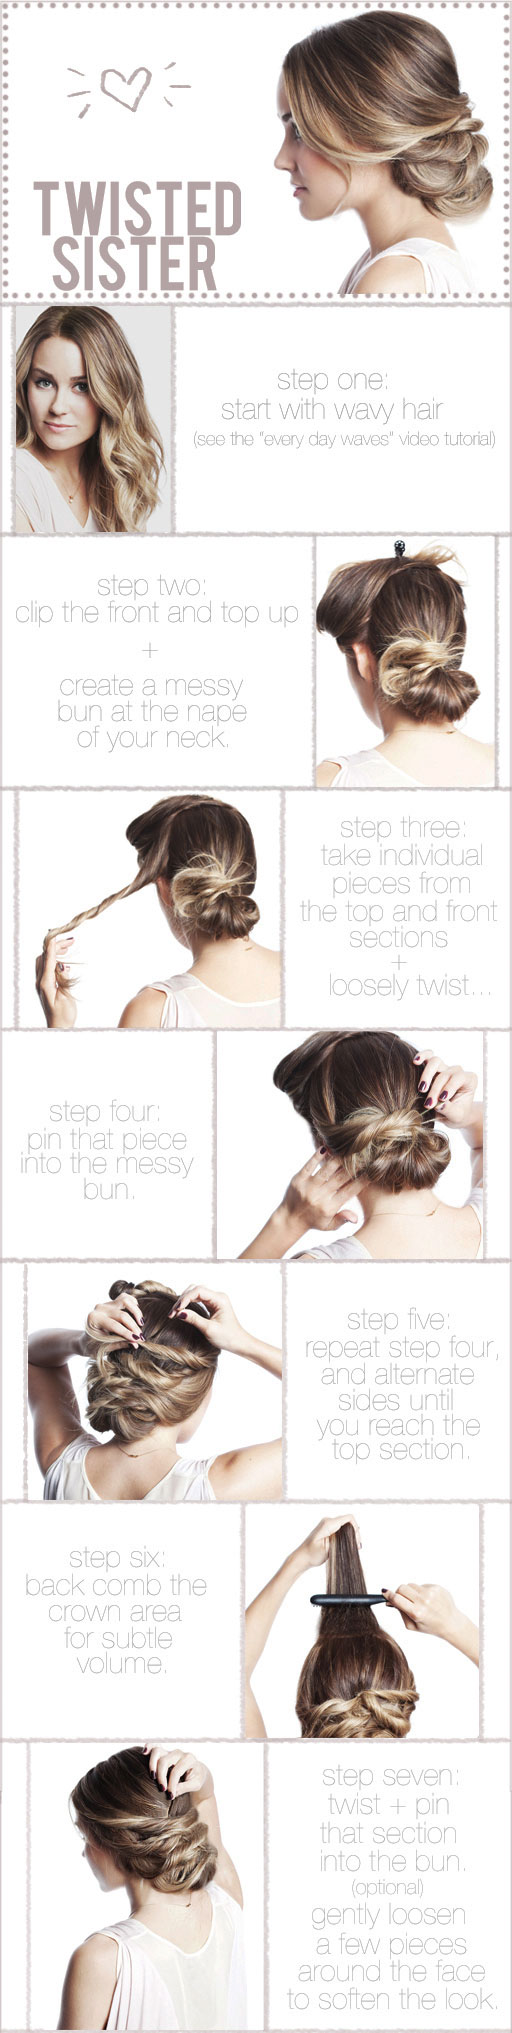 Three-fav-pre-wedding-diy-bridal-hairstyles-how-to-tutorials-for-brides-3.original